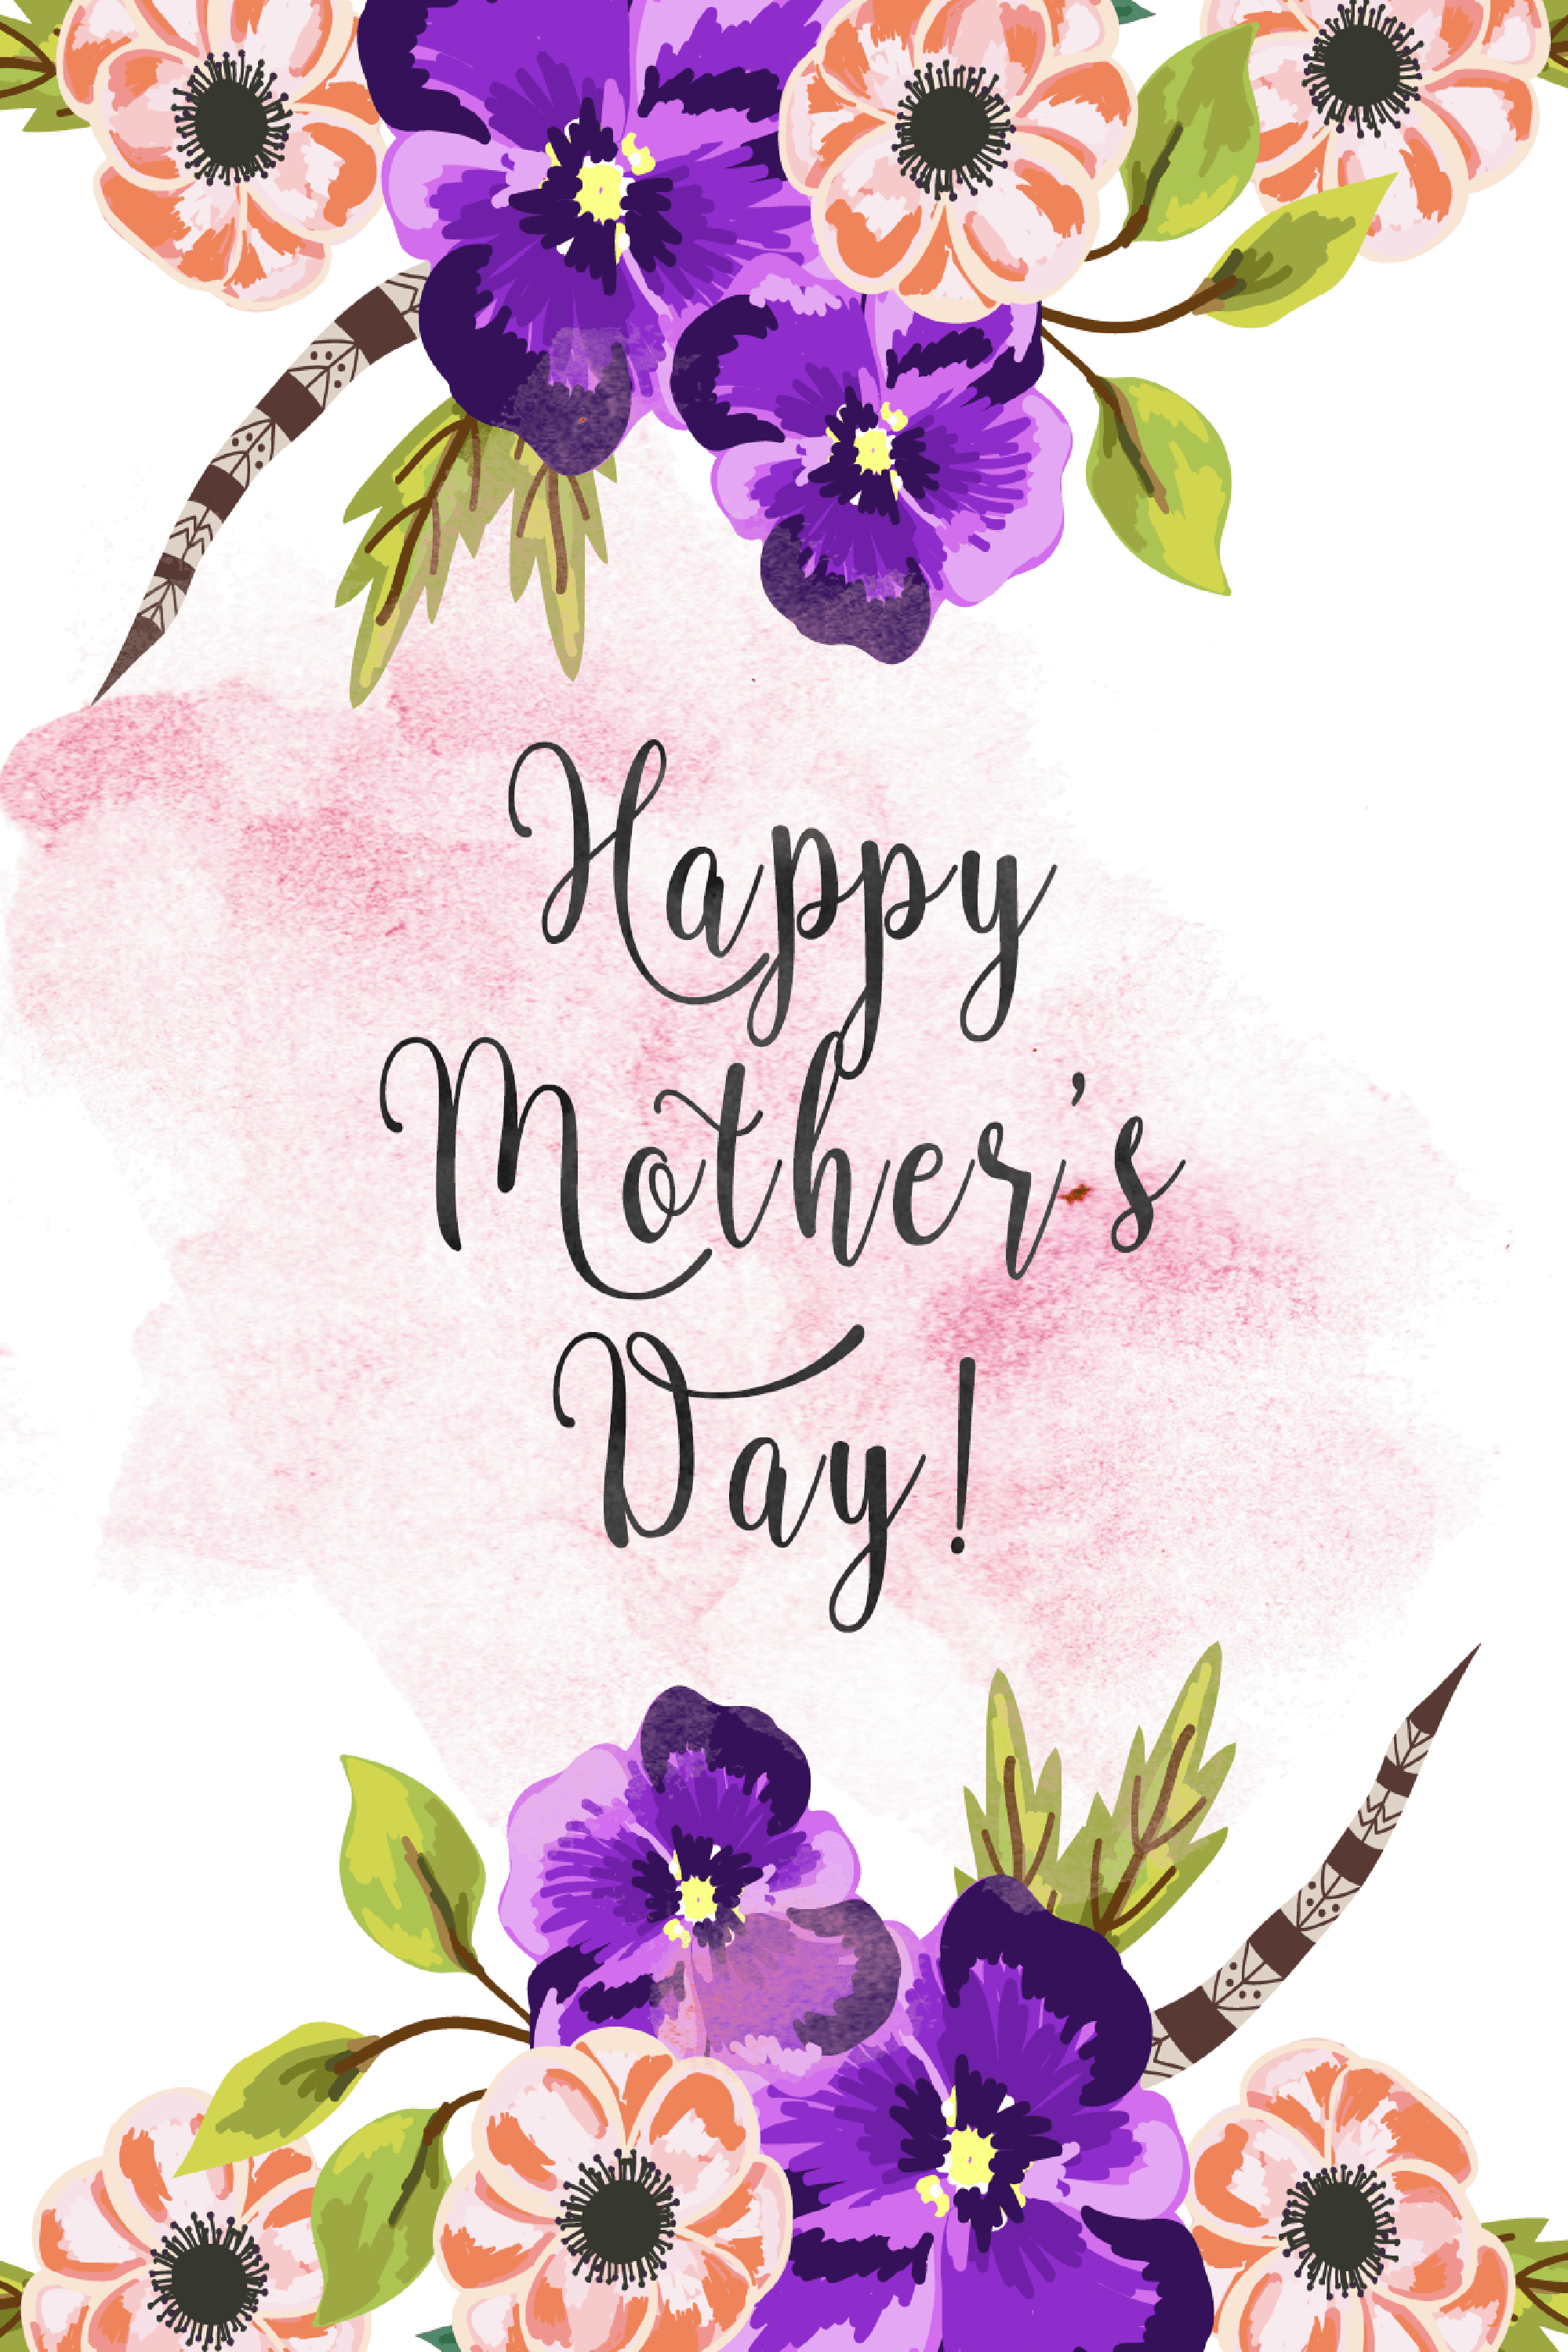 20 Cute Free Printable Mothers Day Cards - Mom Cards You Can Print - Free Printable Mothers Day Cards